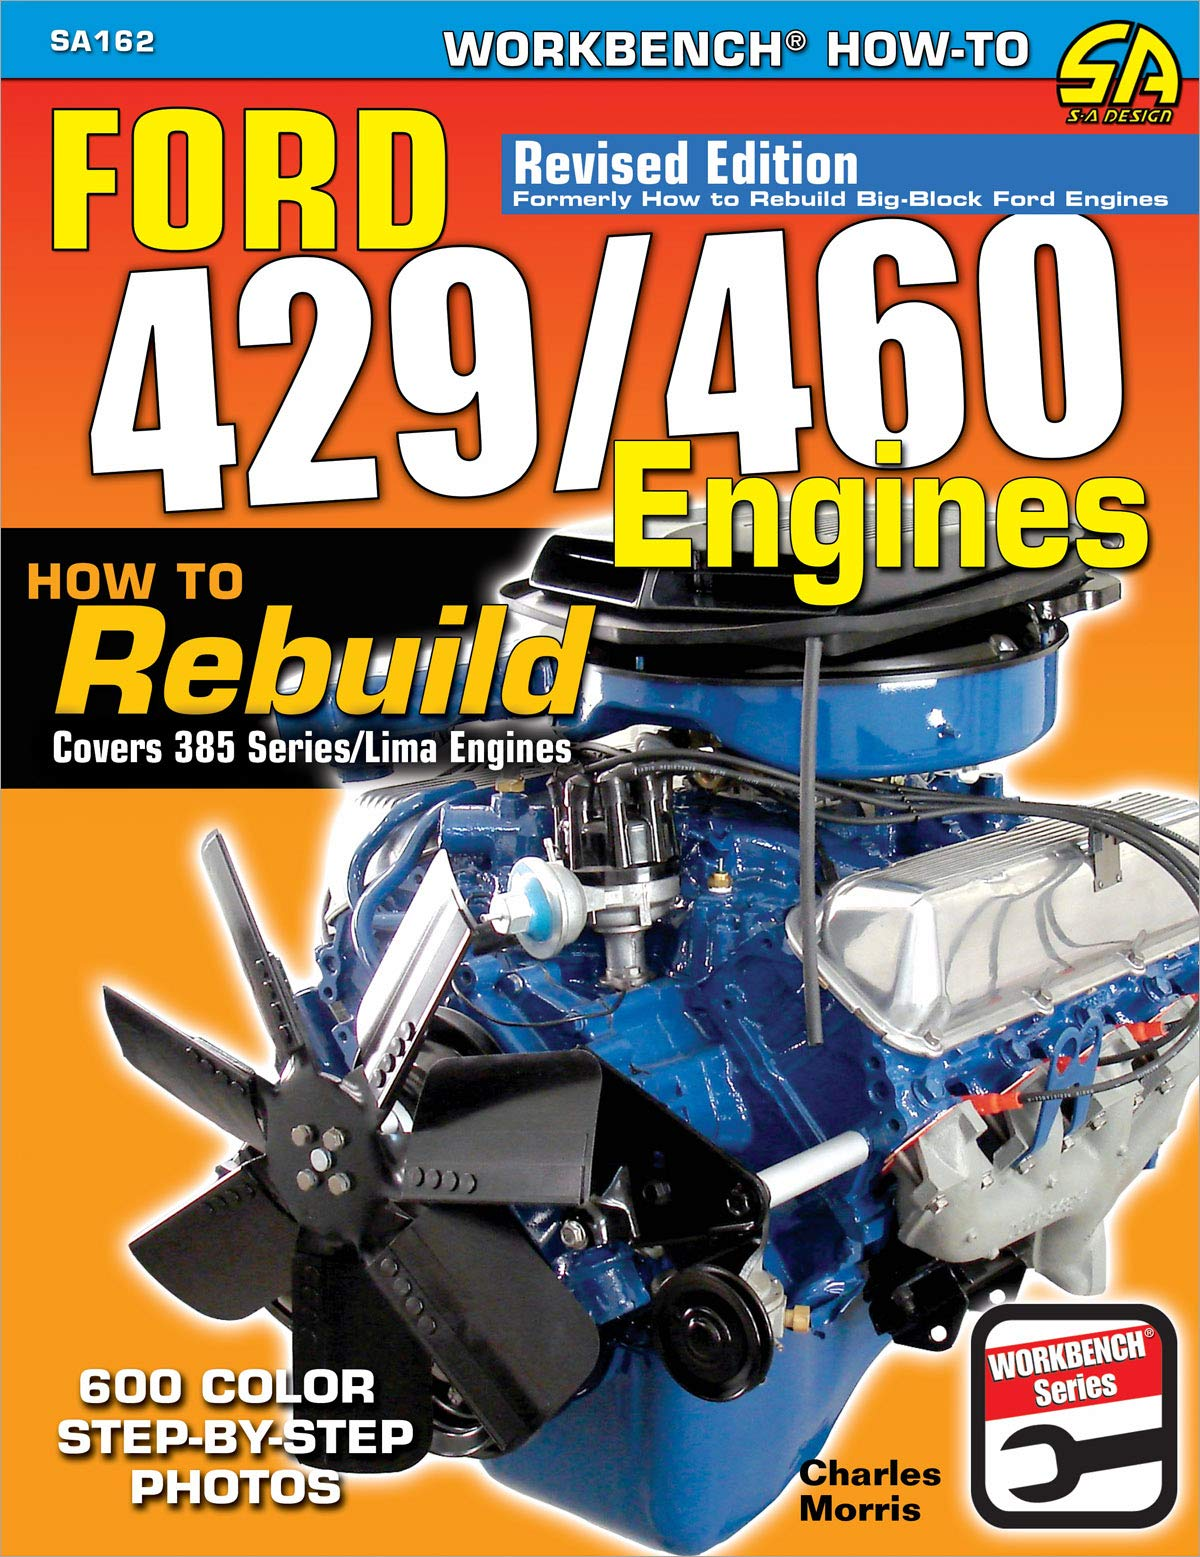 Ford 429/460 Engines: How to Rebuild (Workbench How-to): Morris, Charles:  9781613254929: Amazon.com: BooksAmazon.com